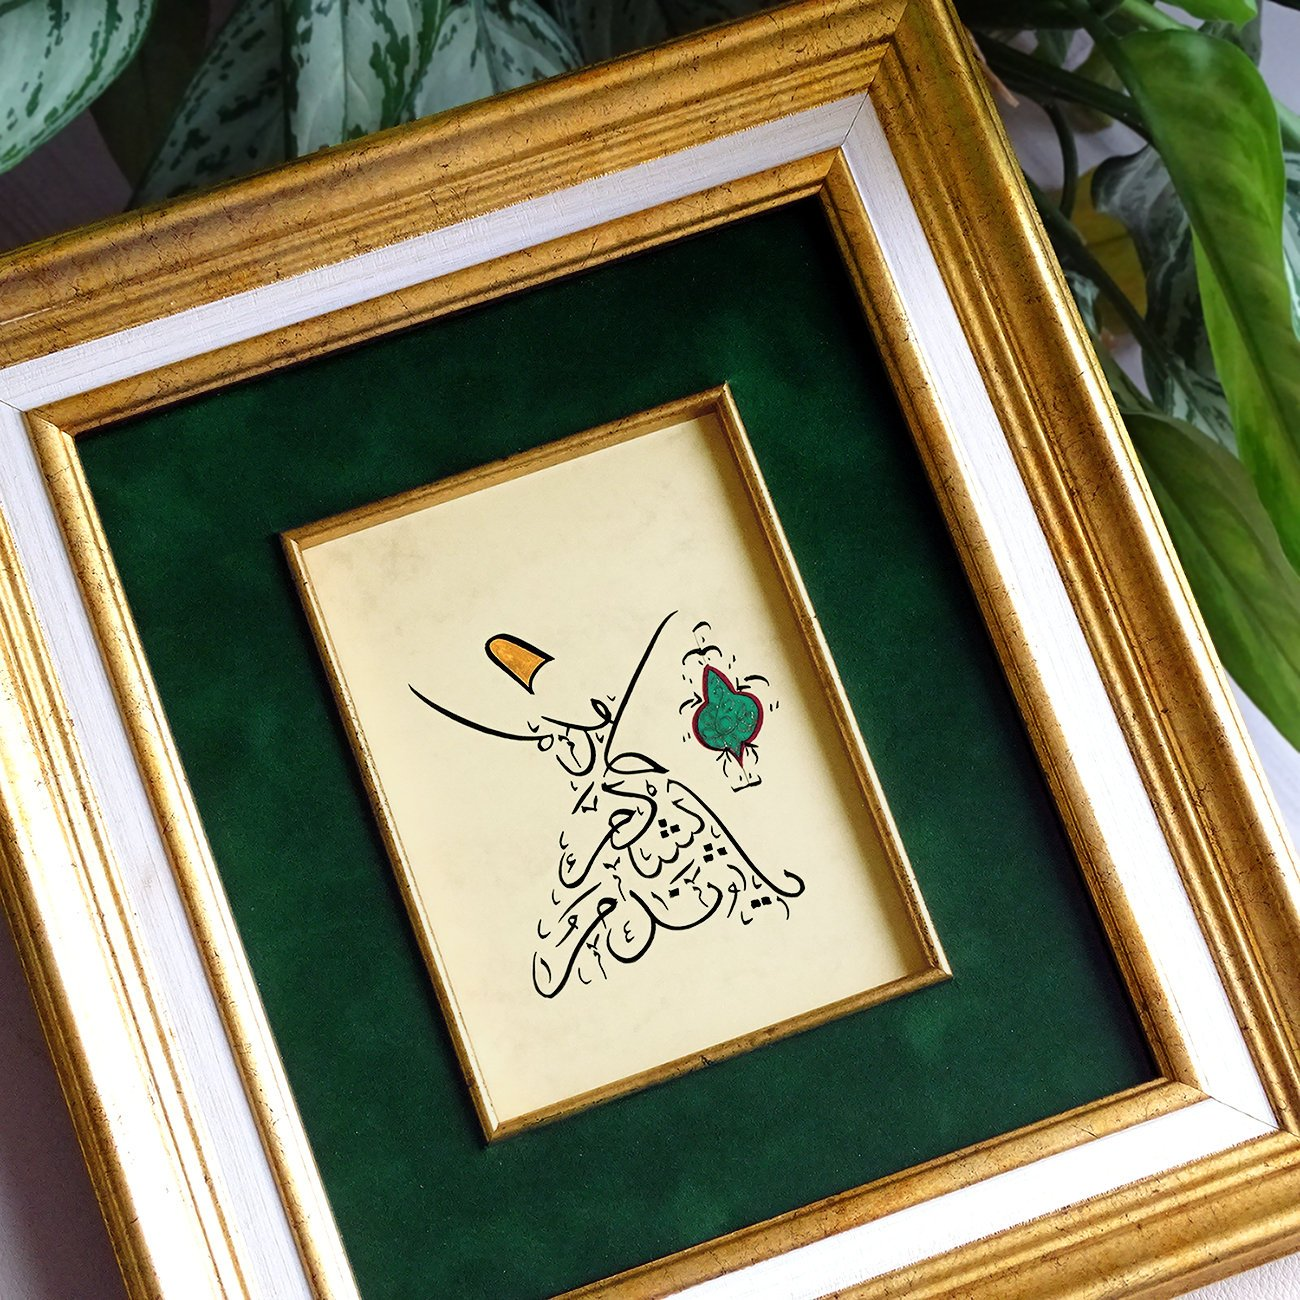 Sufi Painting Art 'You love HIM so that HE loves you' Whirling Dervish Arabic Calligraphy Wall Art Framed, Islamic Art, Islamic Wall Decor